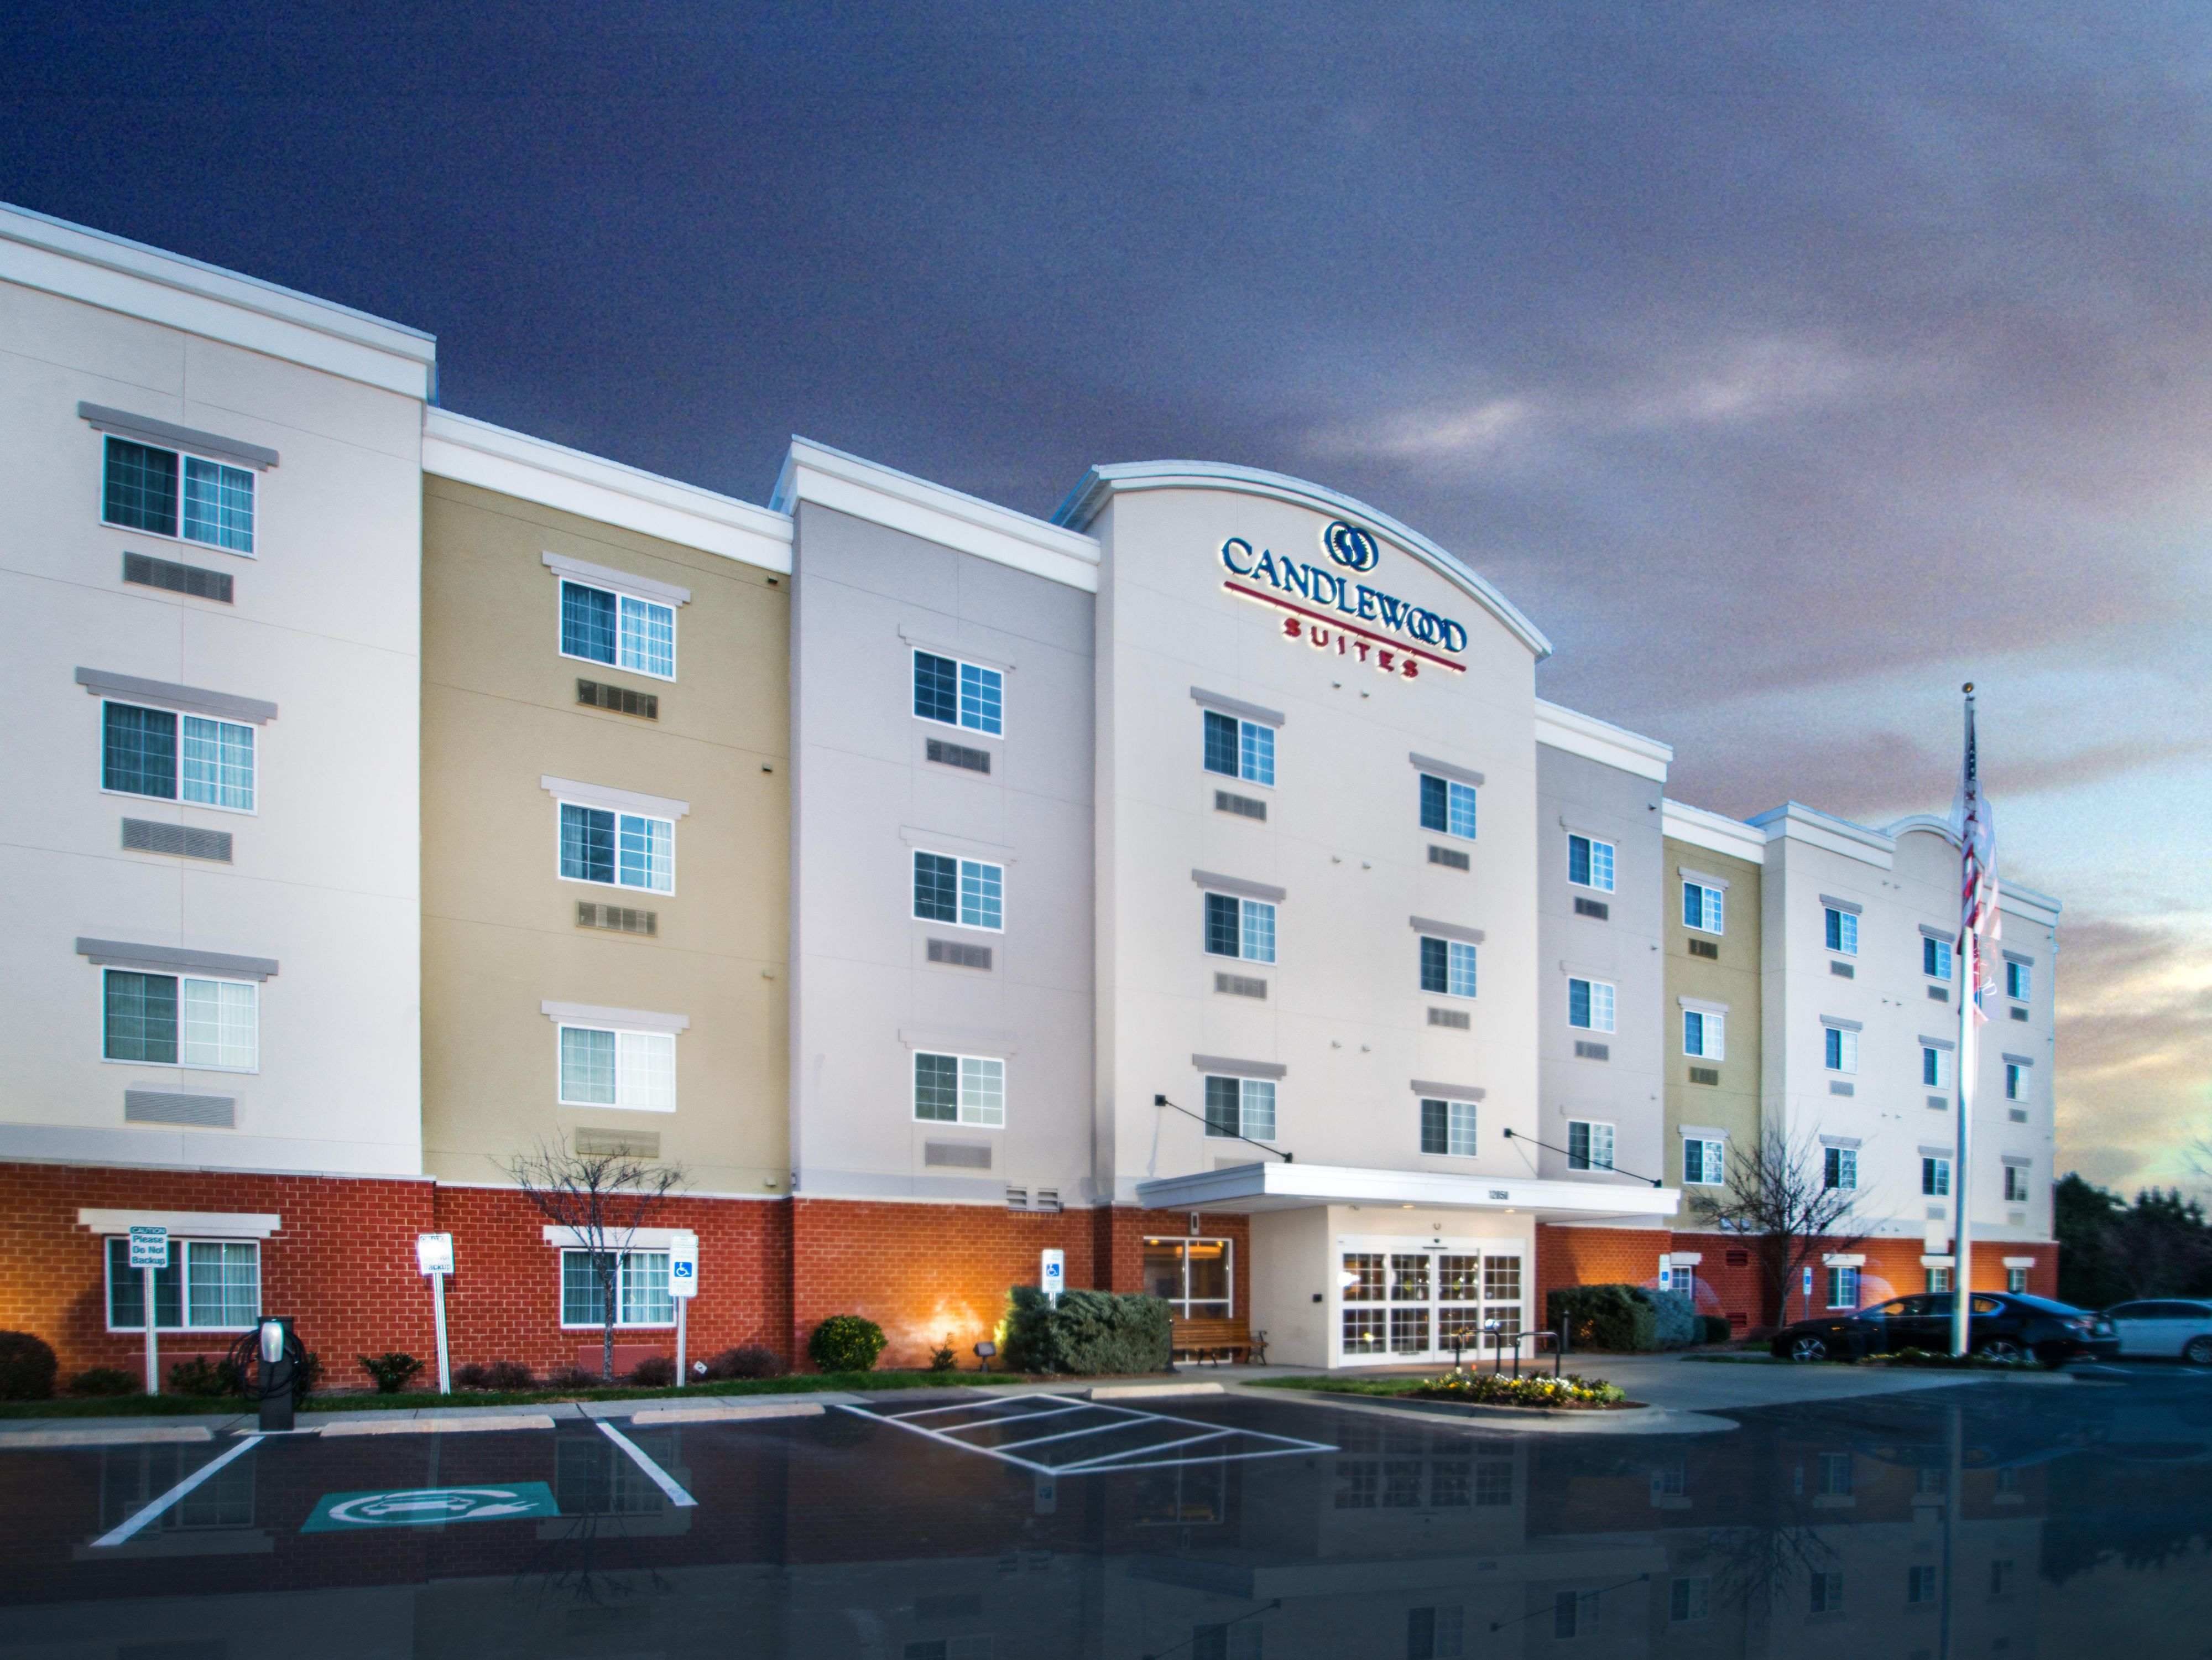 Candlewood Suites Wake Forest Raleigh Area - Extended Stay Hotel in ...